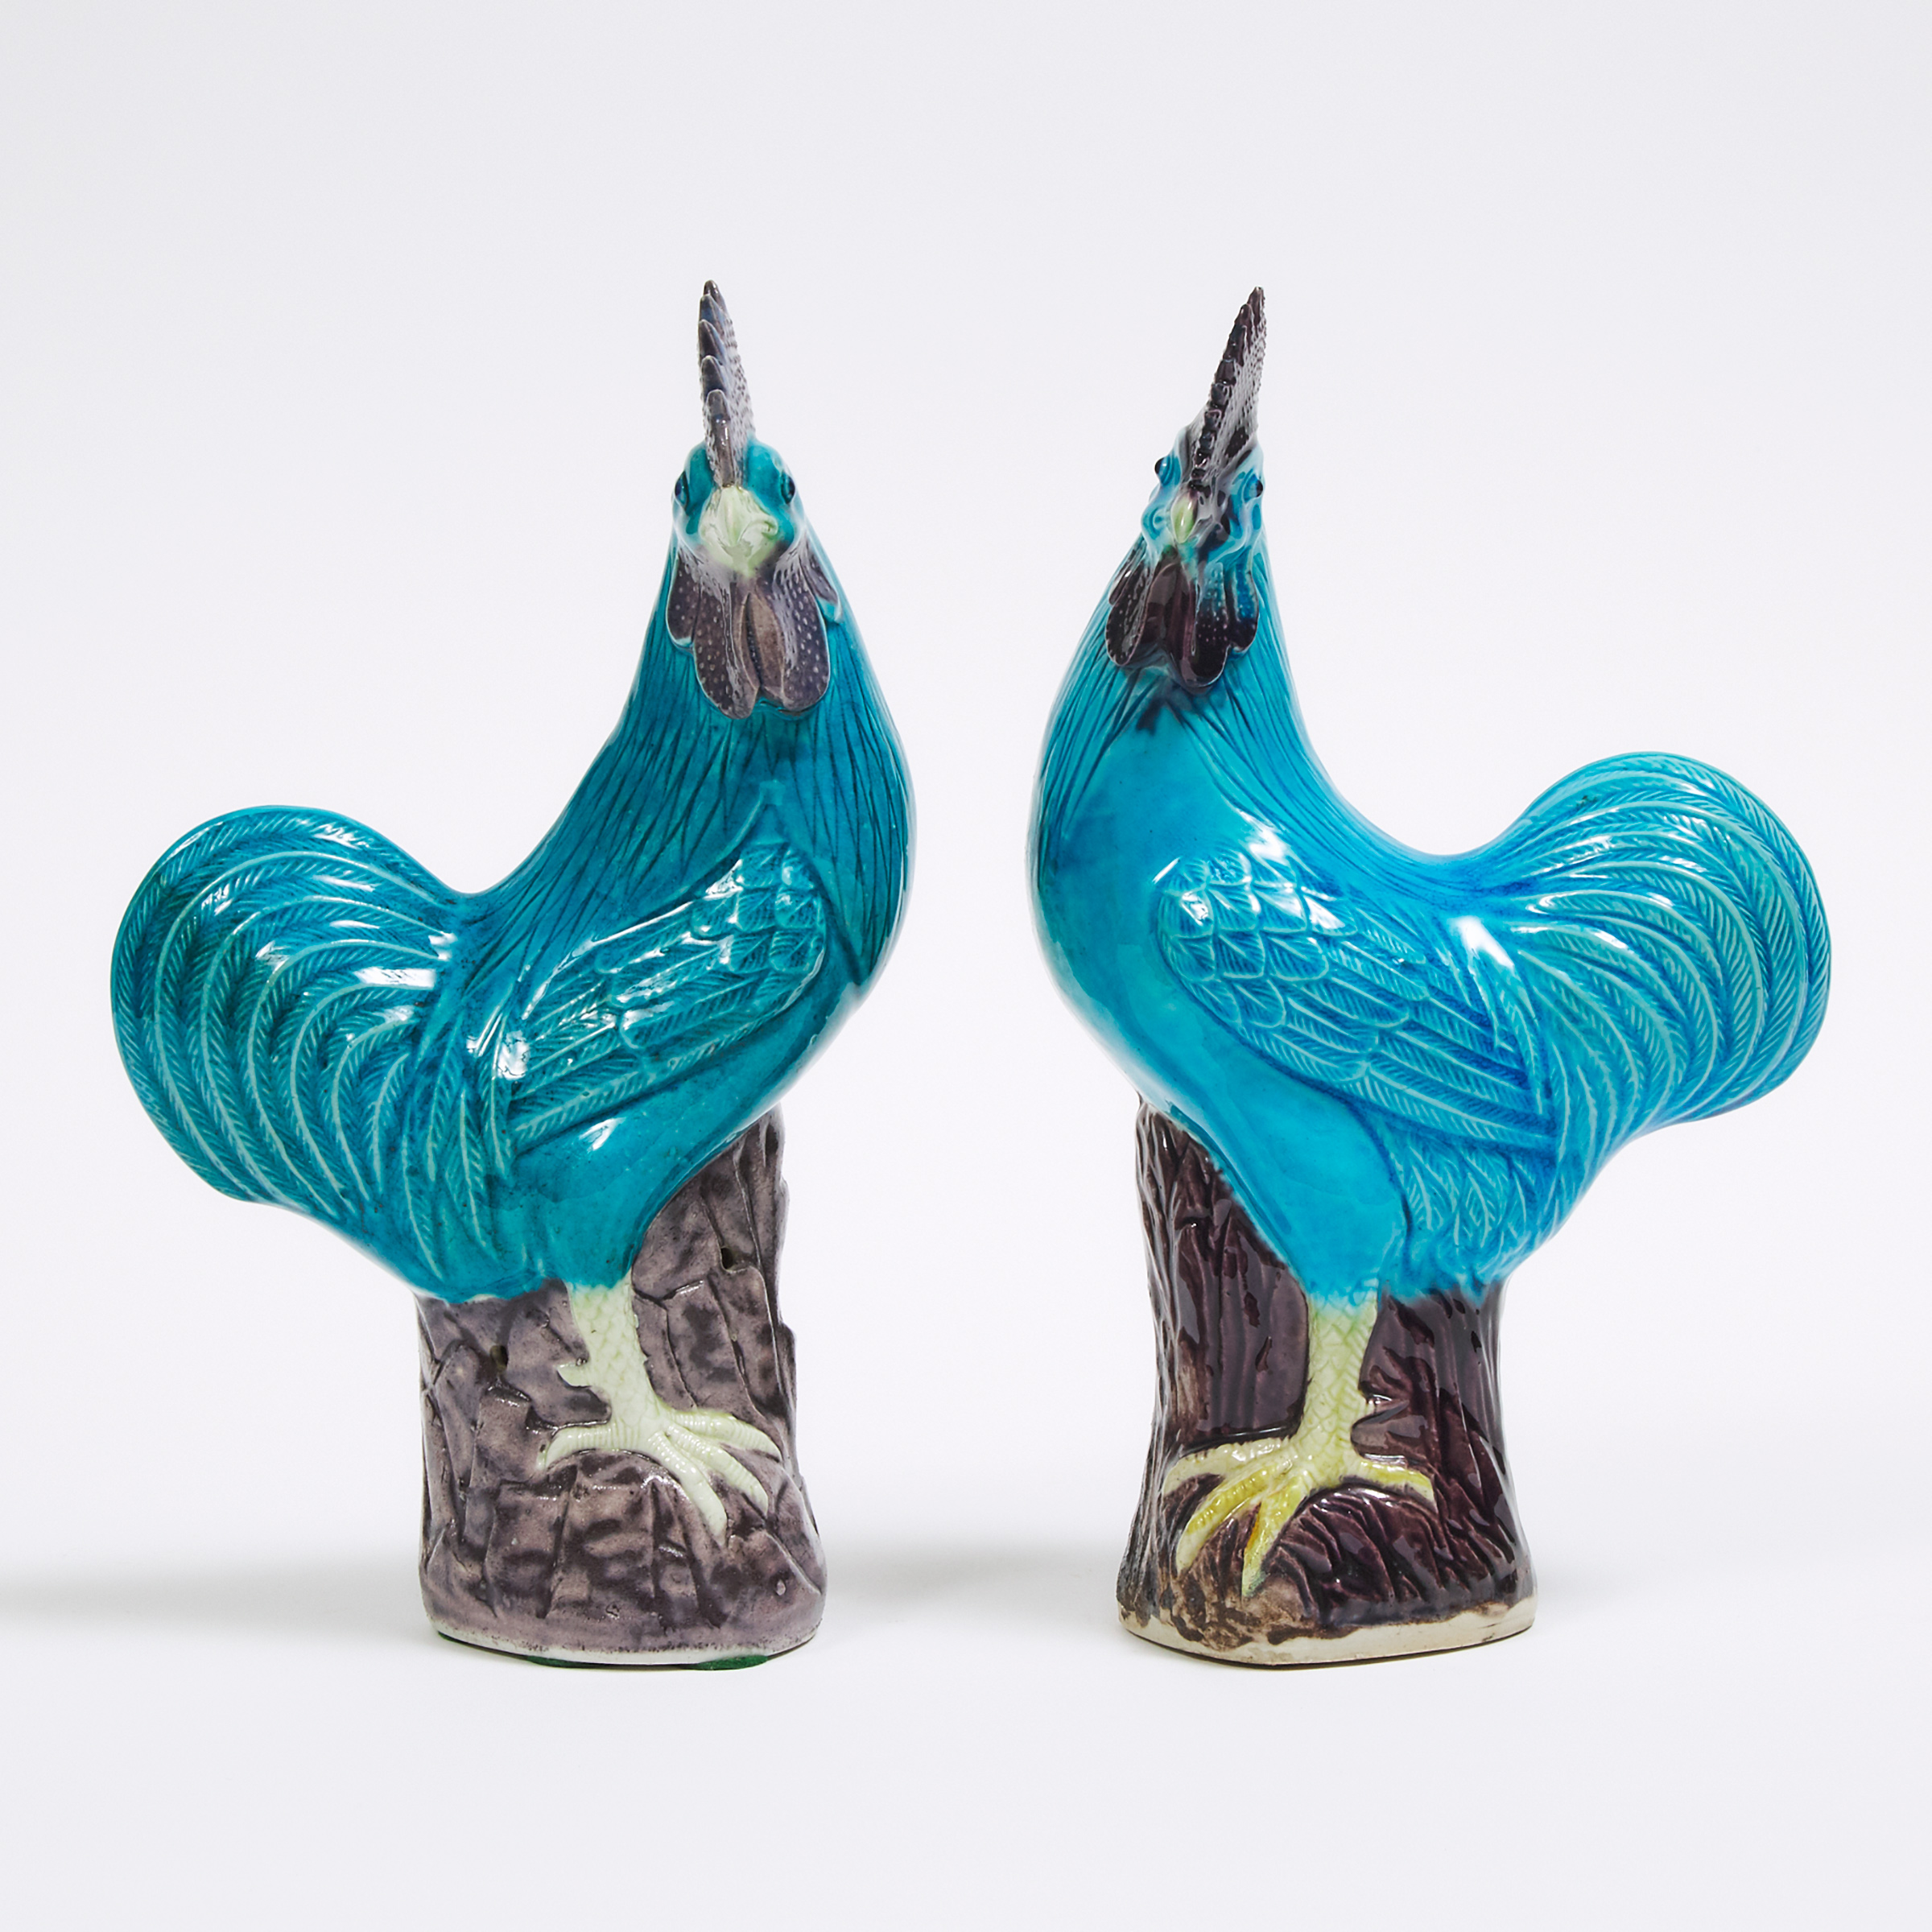 A Pair of Turquoise Glazed Porcelain Roosters, 19th Century or Later